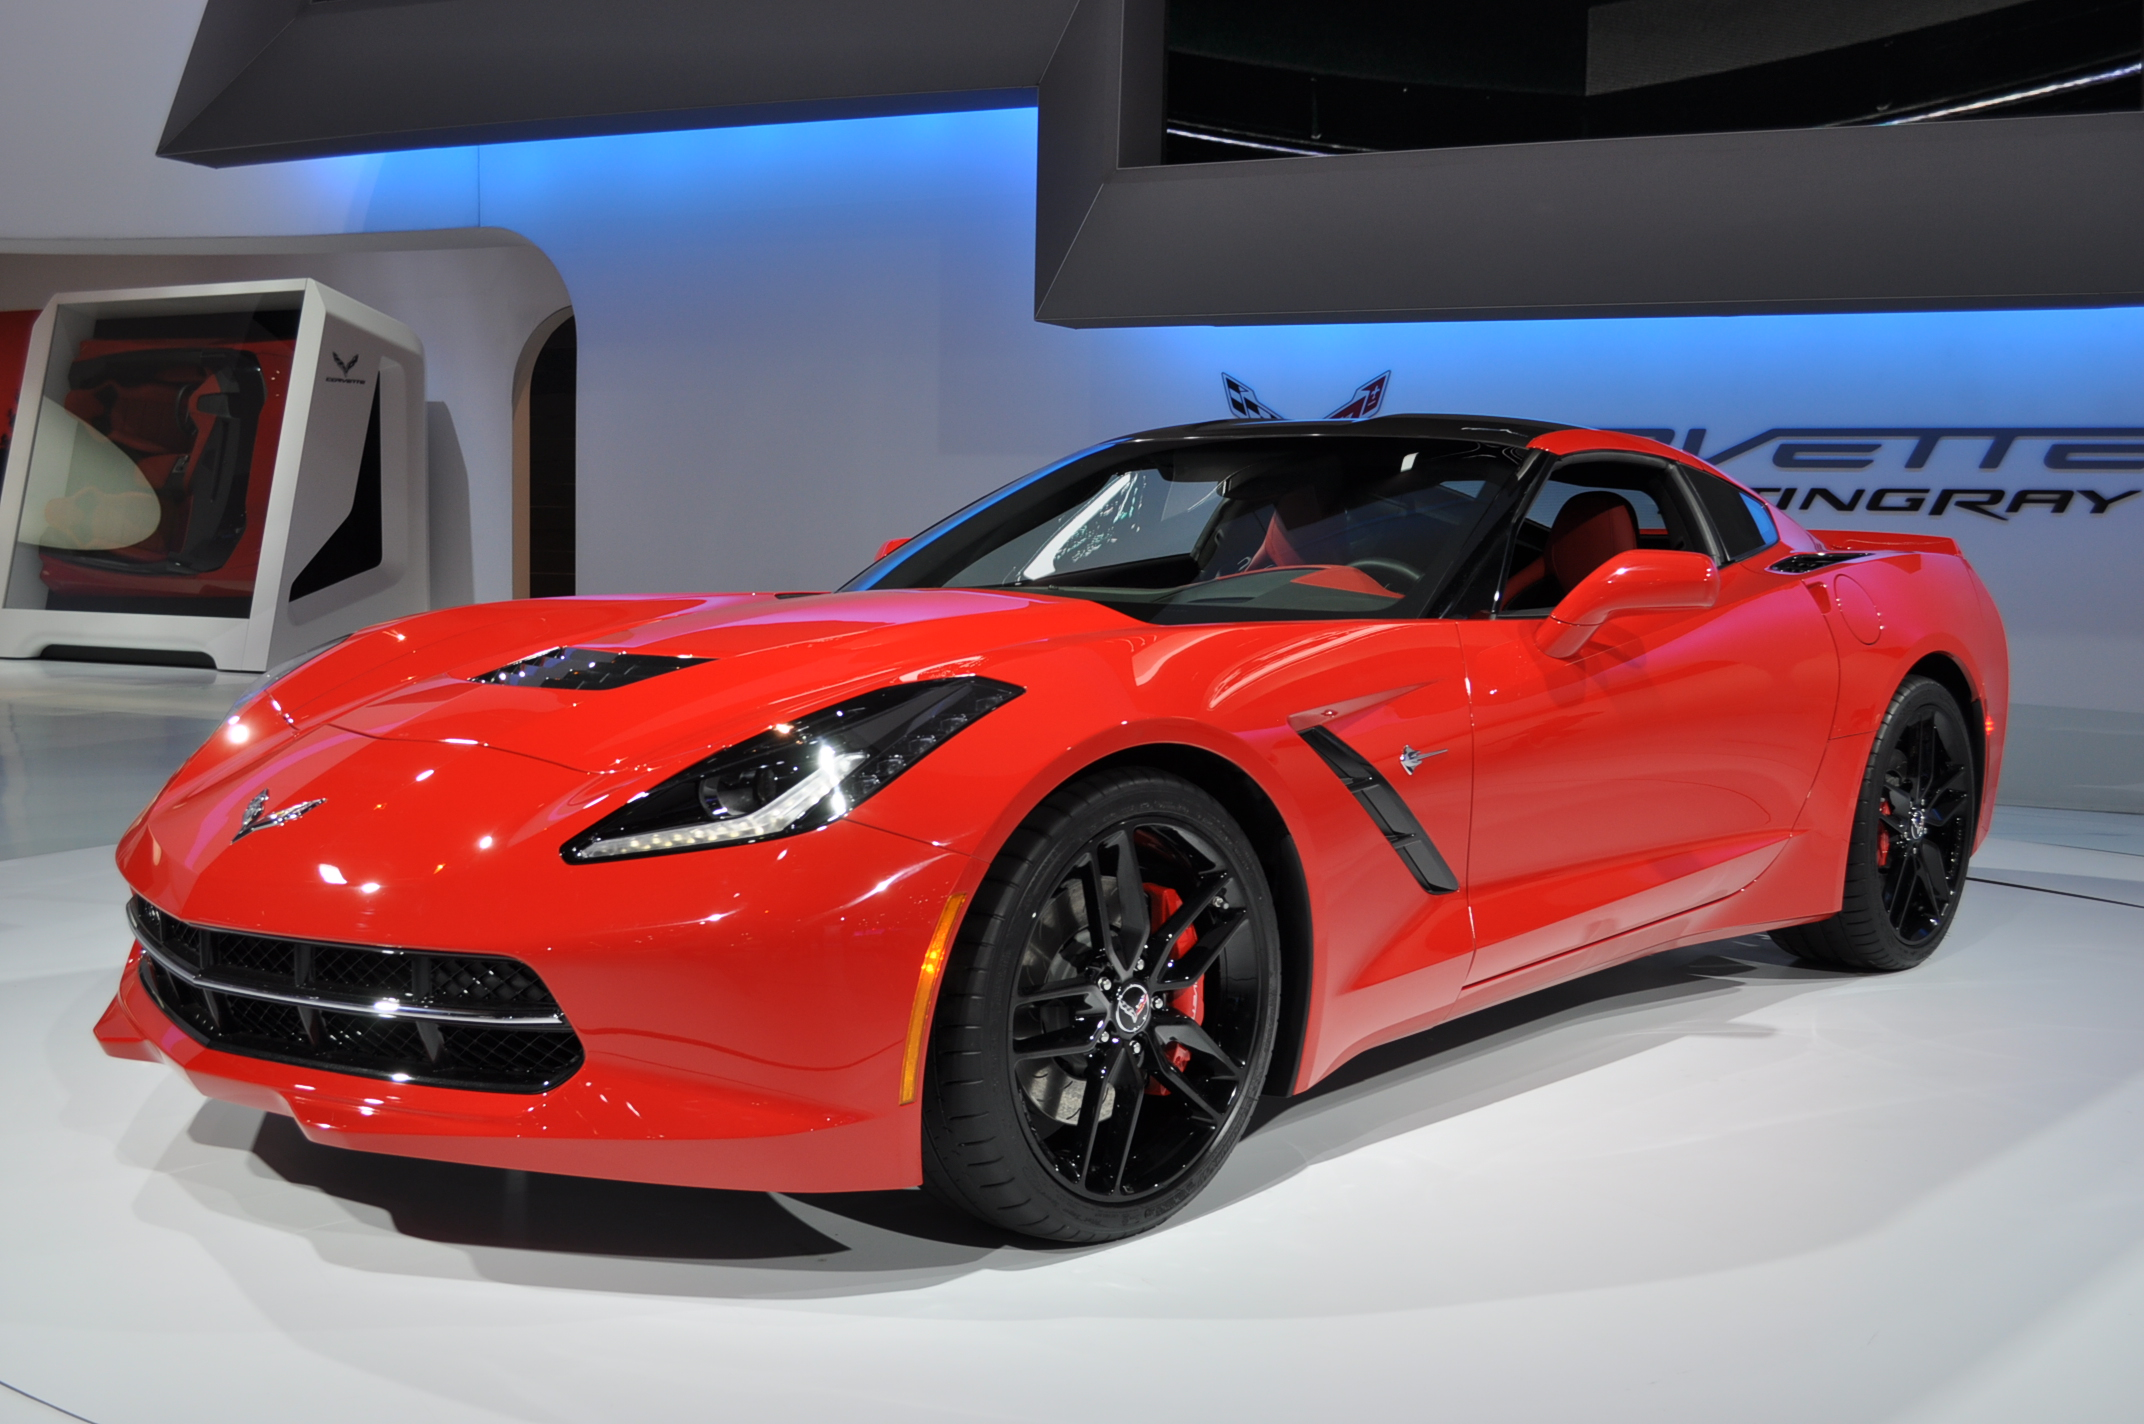 2014 Chevrolet Corvette Stingray EPA Rated: 29 MPG Hwy, 21 ...